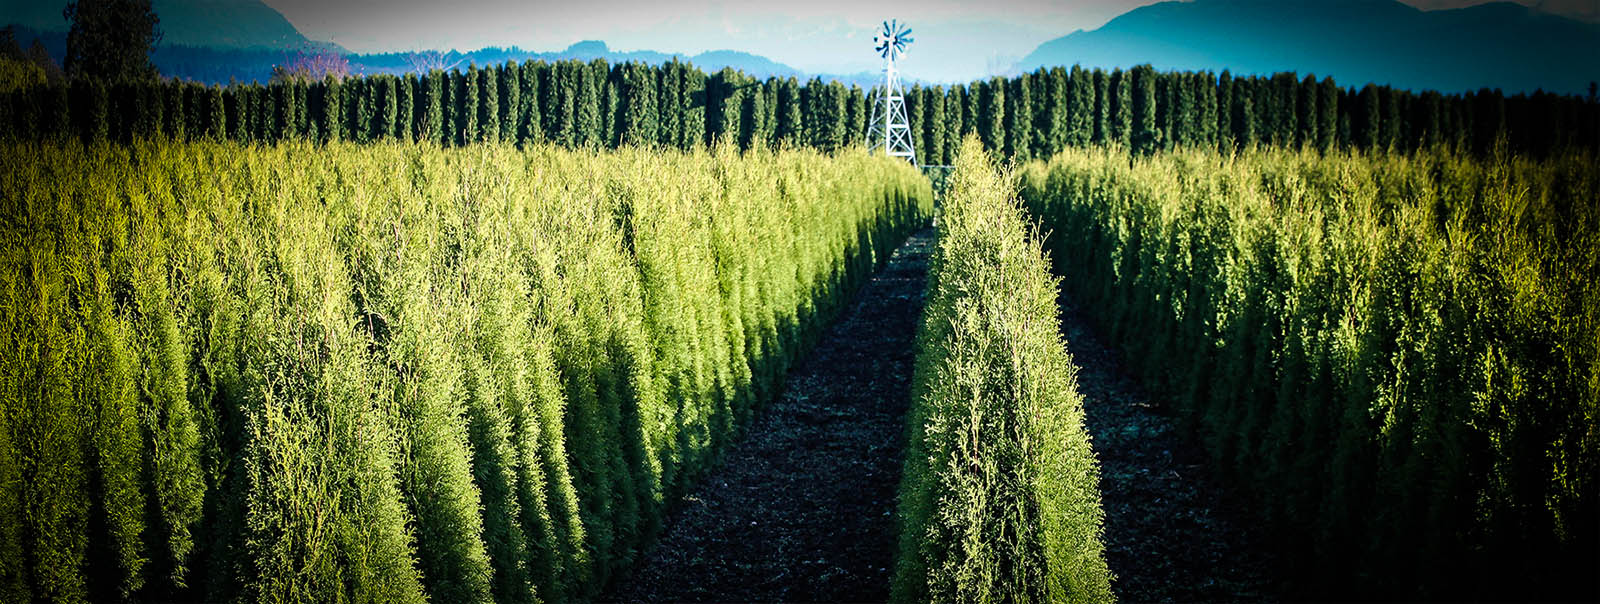 Thuja Yellow Ribbon Height Thuja Green Giant Guide The Tree Center